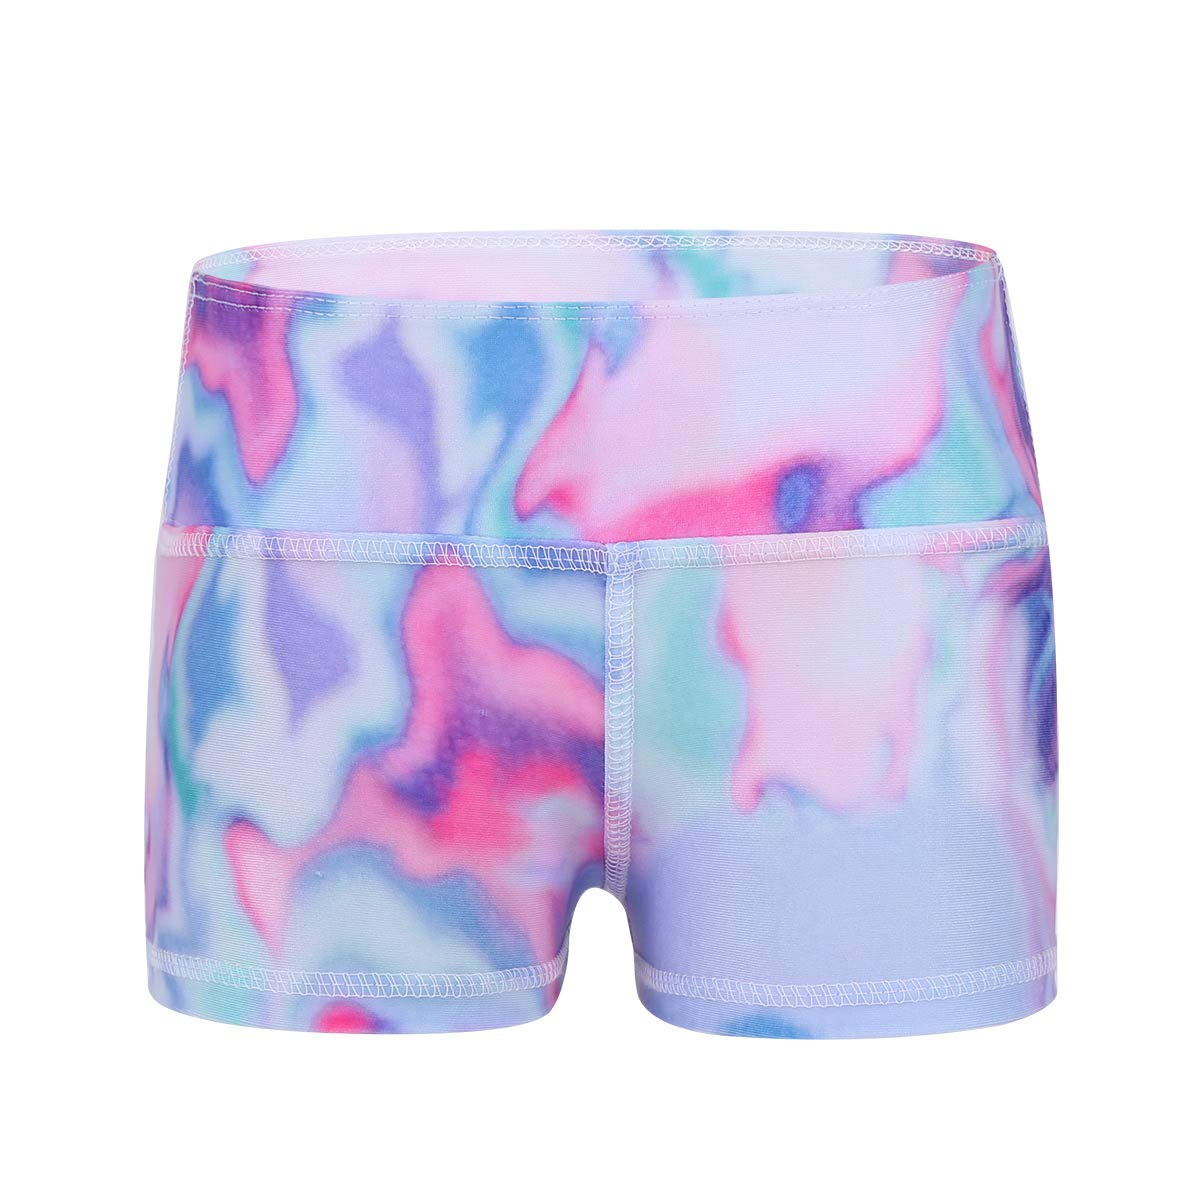 Freebily Kids Girls Boy-Cut High Waist Dance Shorts Sports Gymnastic Workout Bottoms Activewear